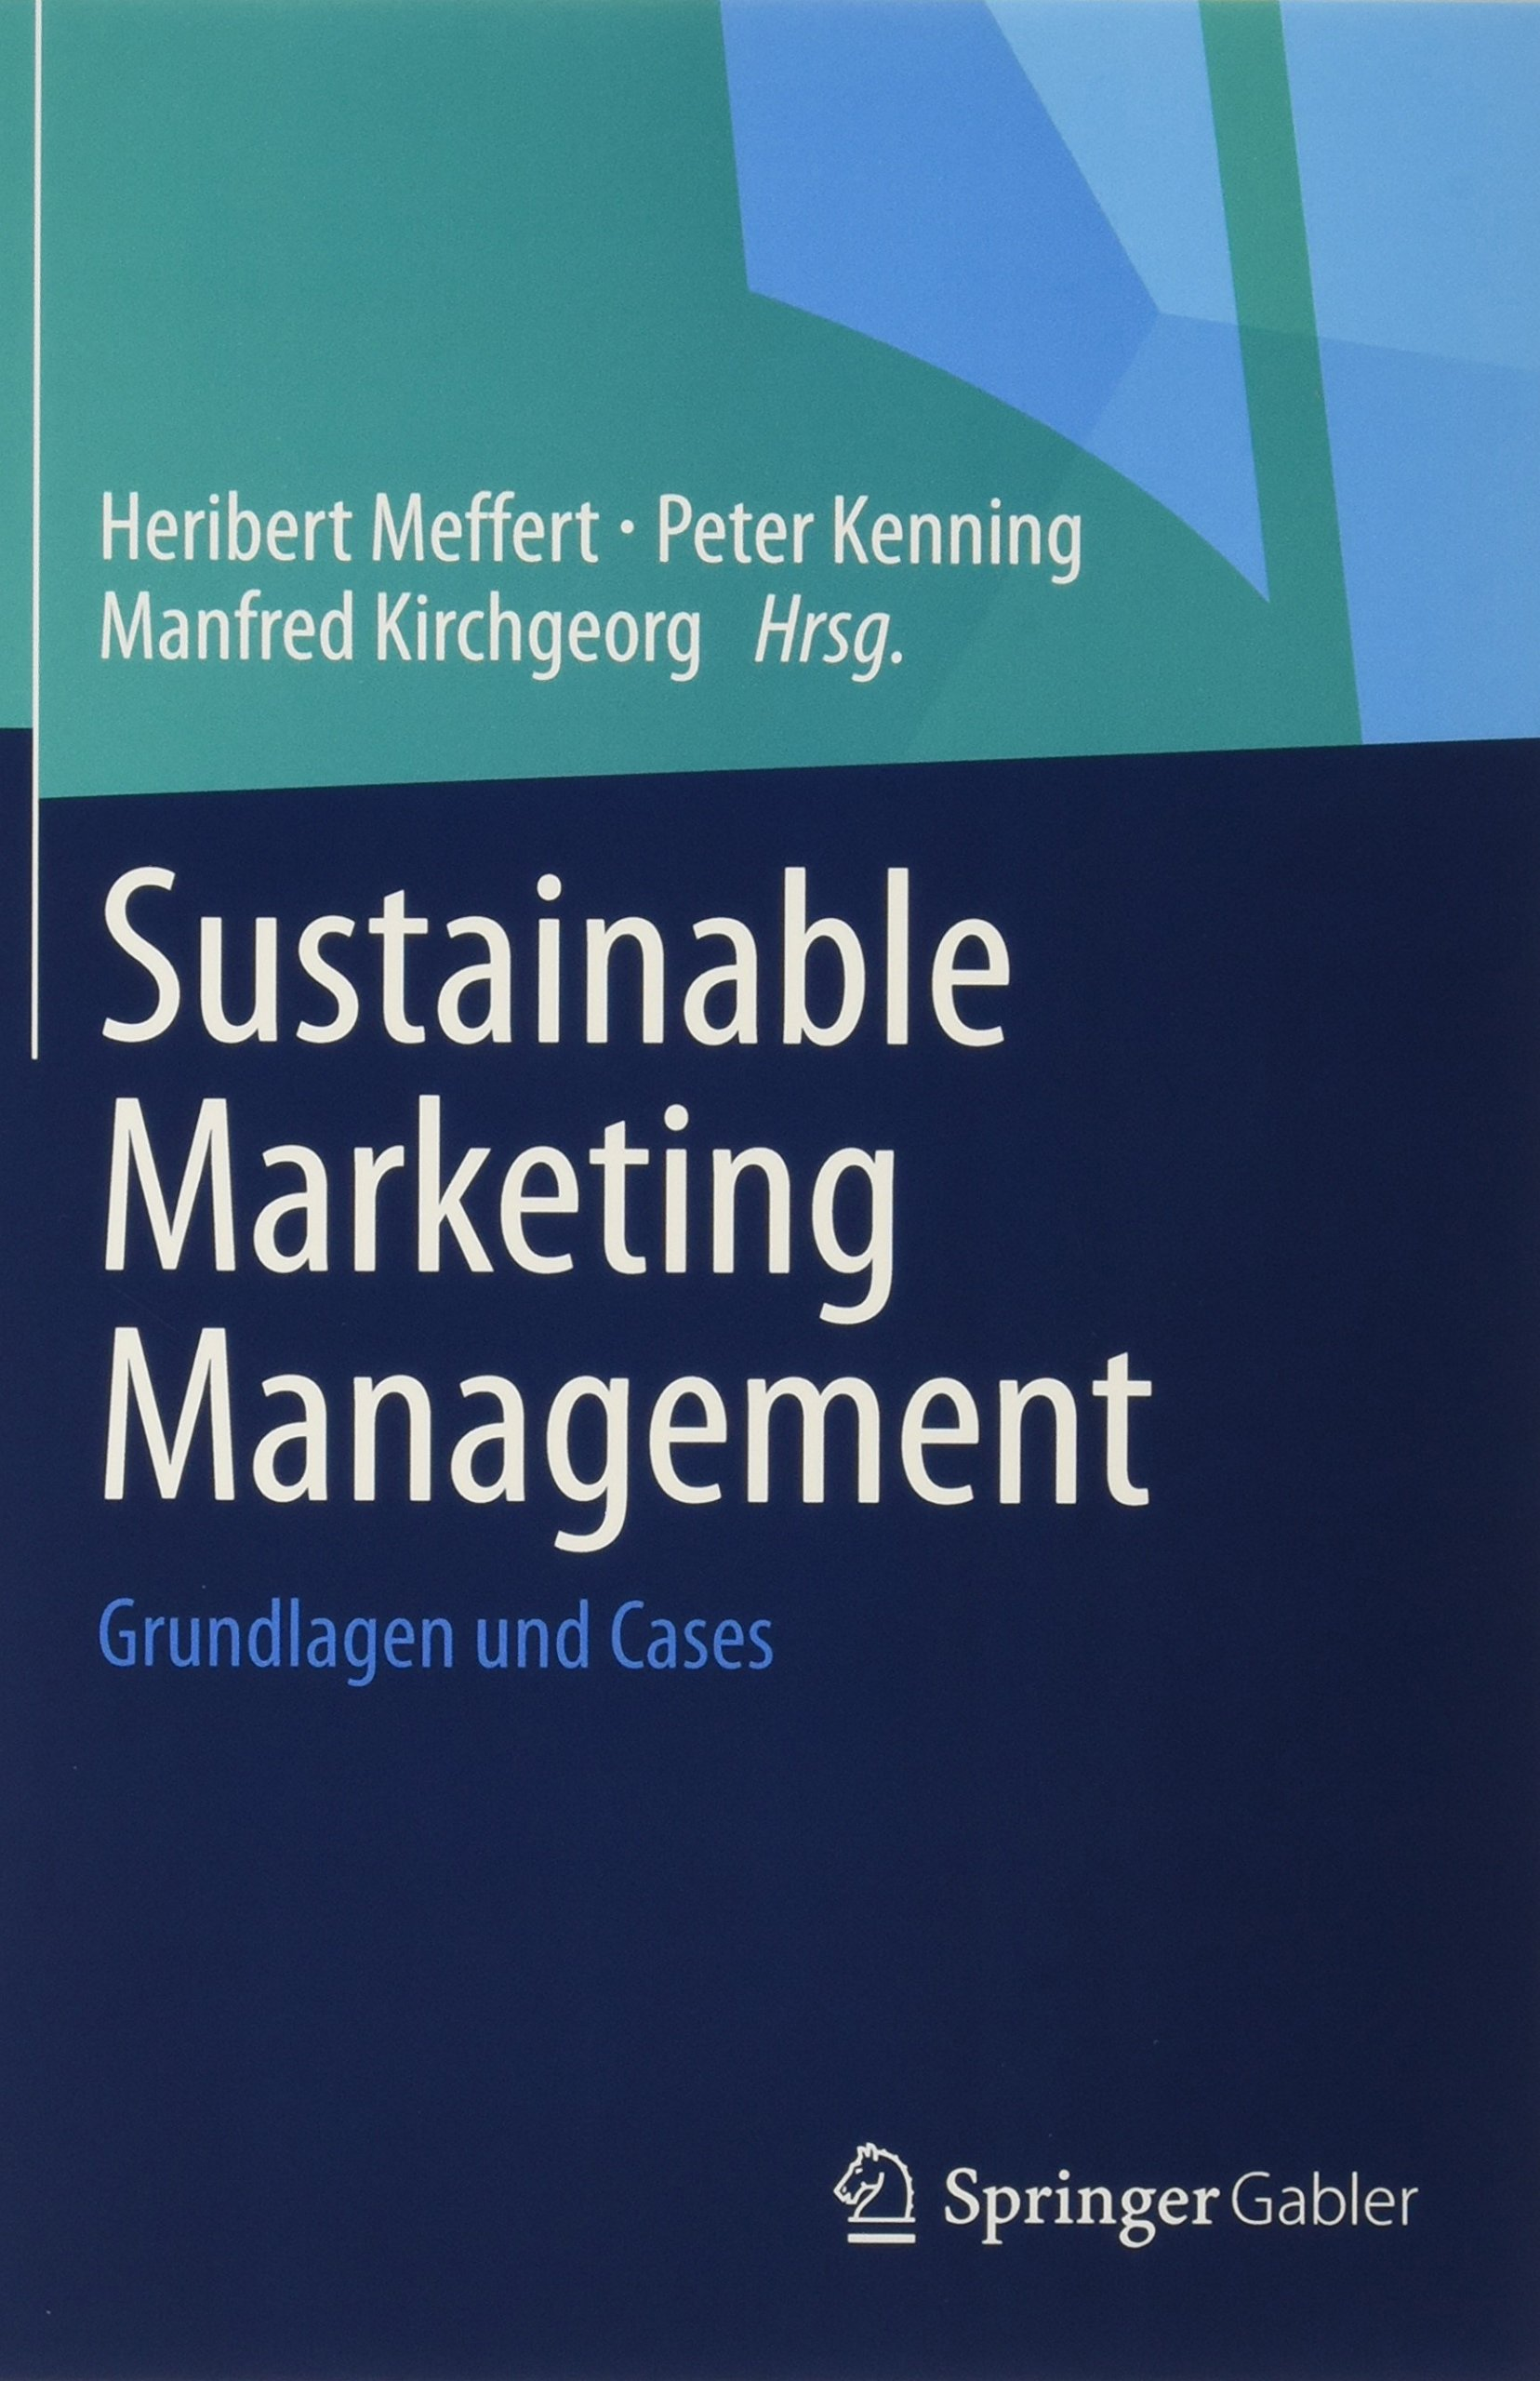 Sustainable Marketing Management: Grundlagen und Cases Taschenbuch – 9. Januar 2015 Heribert Meffert Peter Kenning Manfred Kirchgeorg Springer Gabler